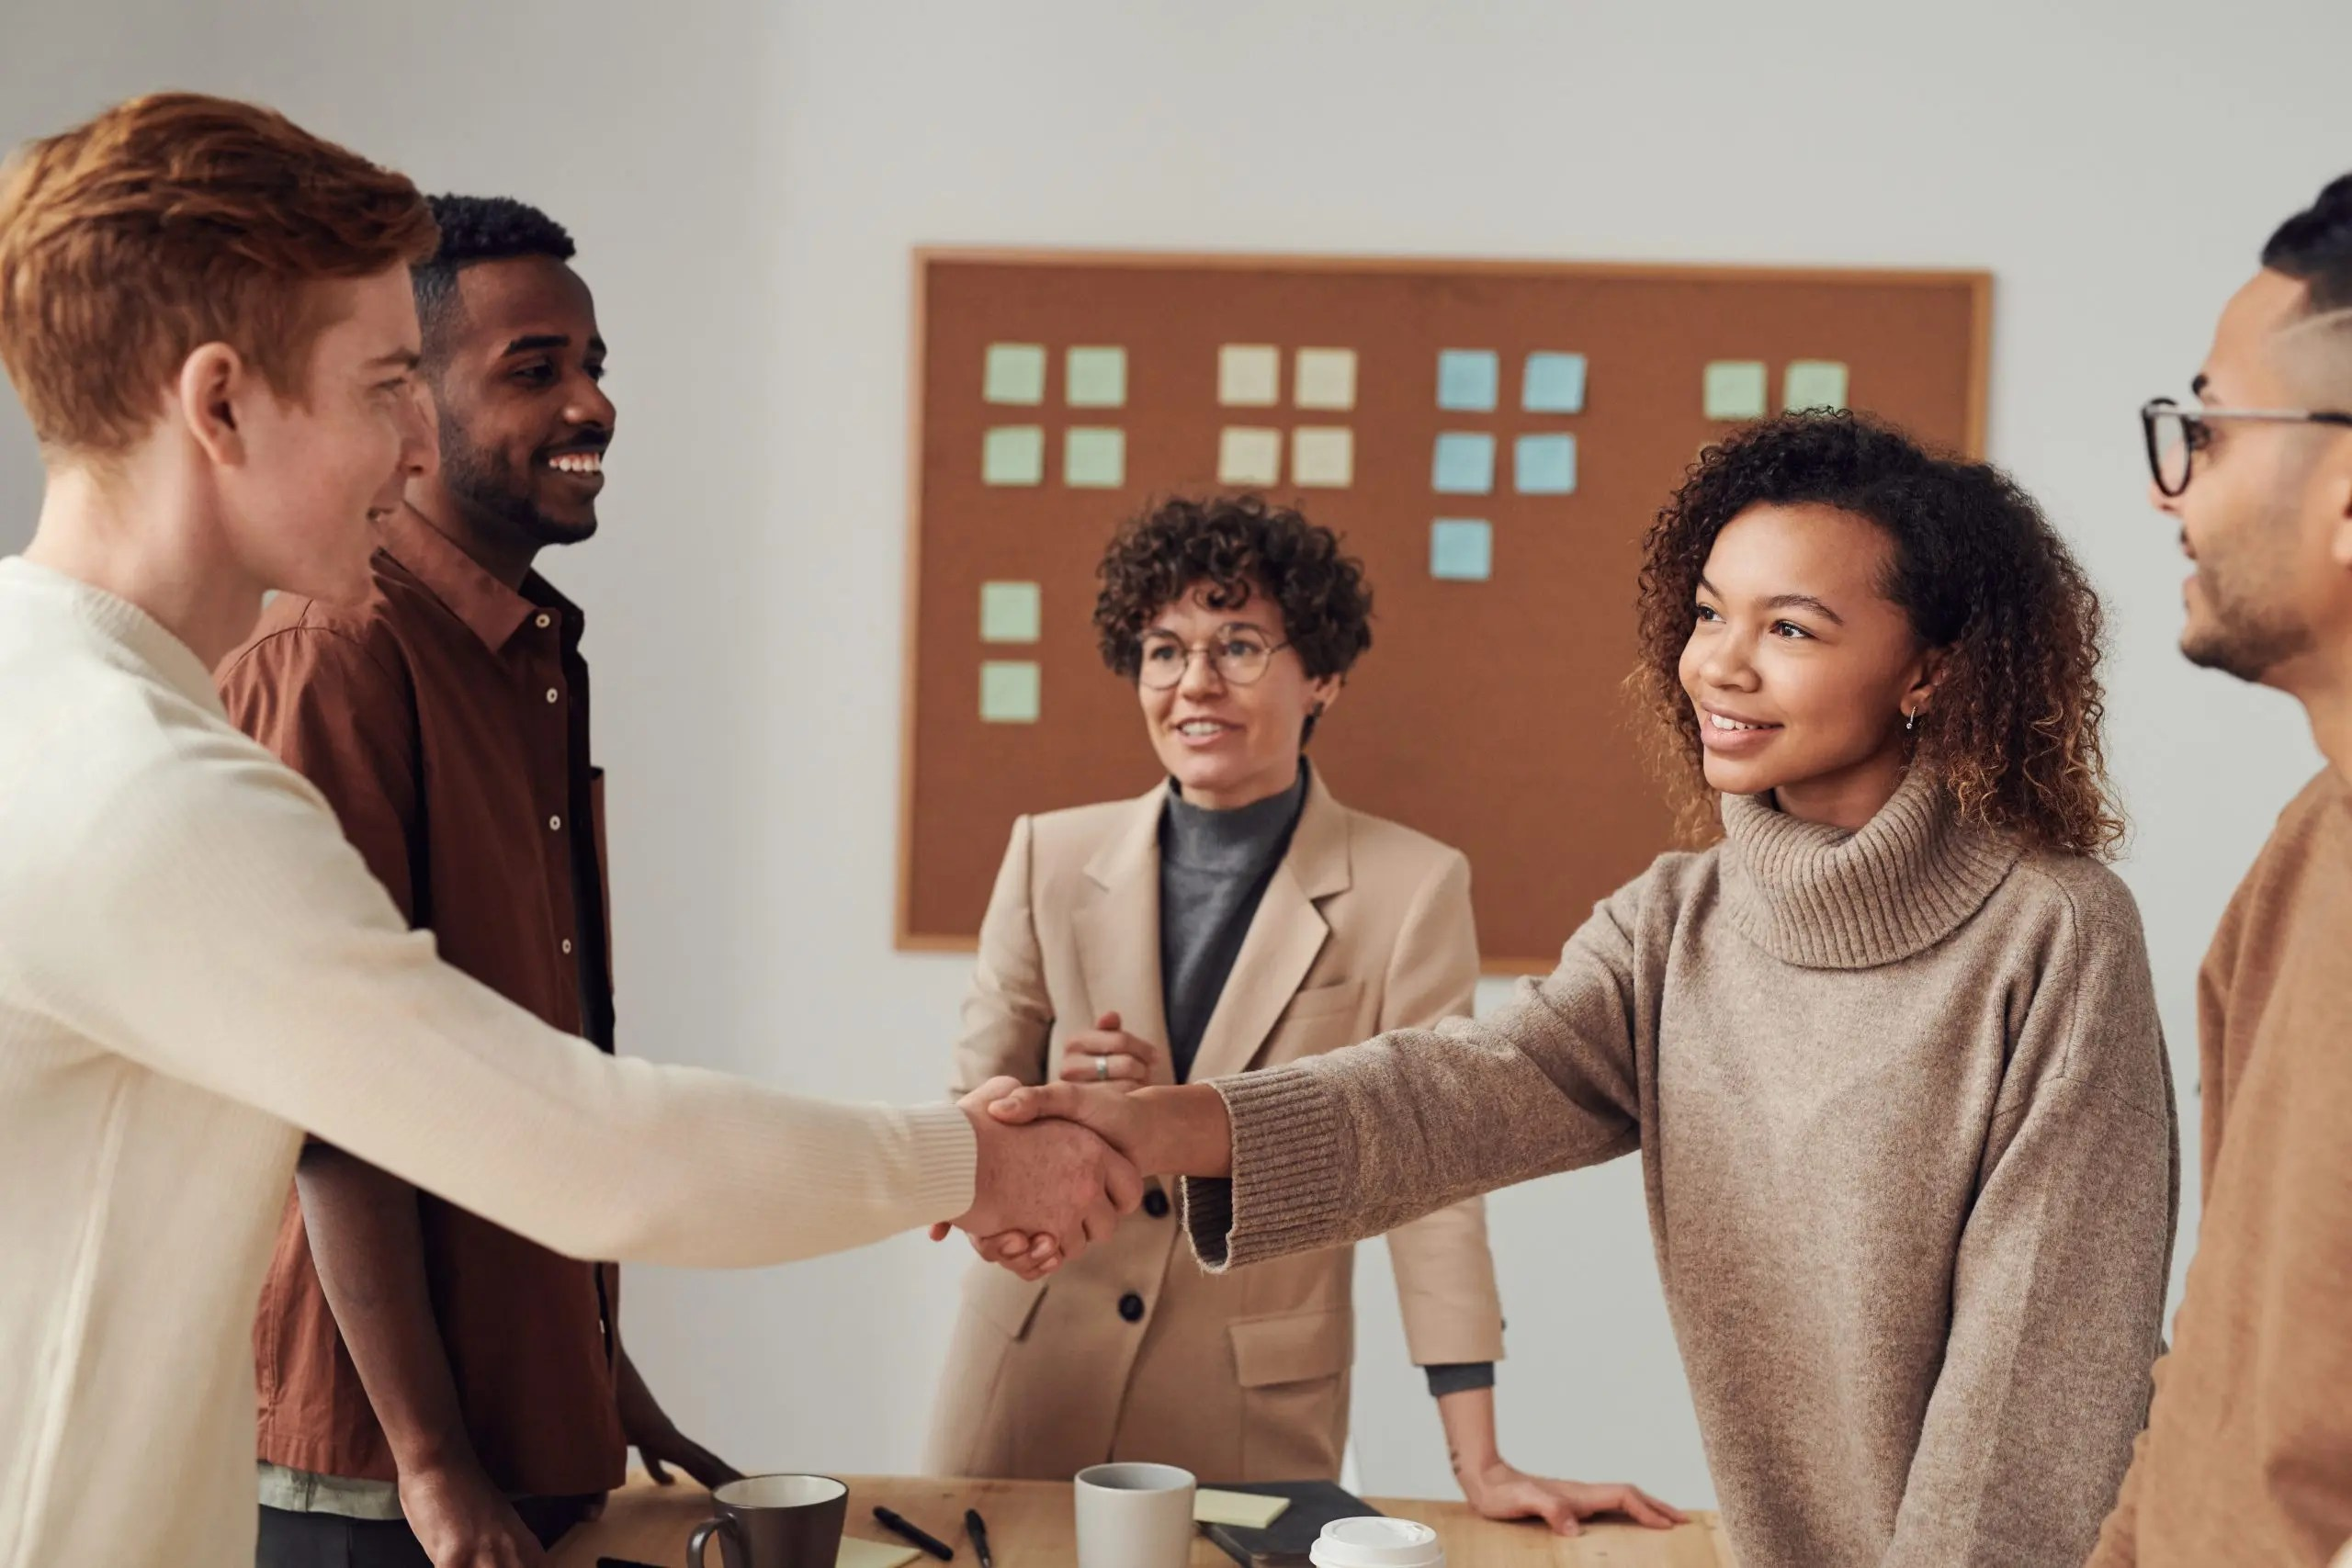 Multi-racial group of people with a man and woman shaking hands